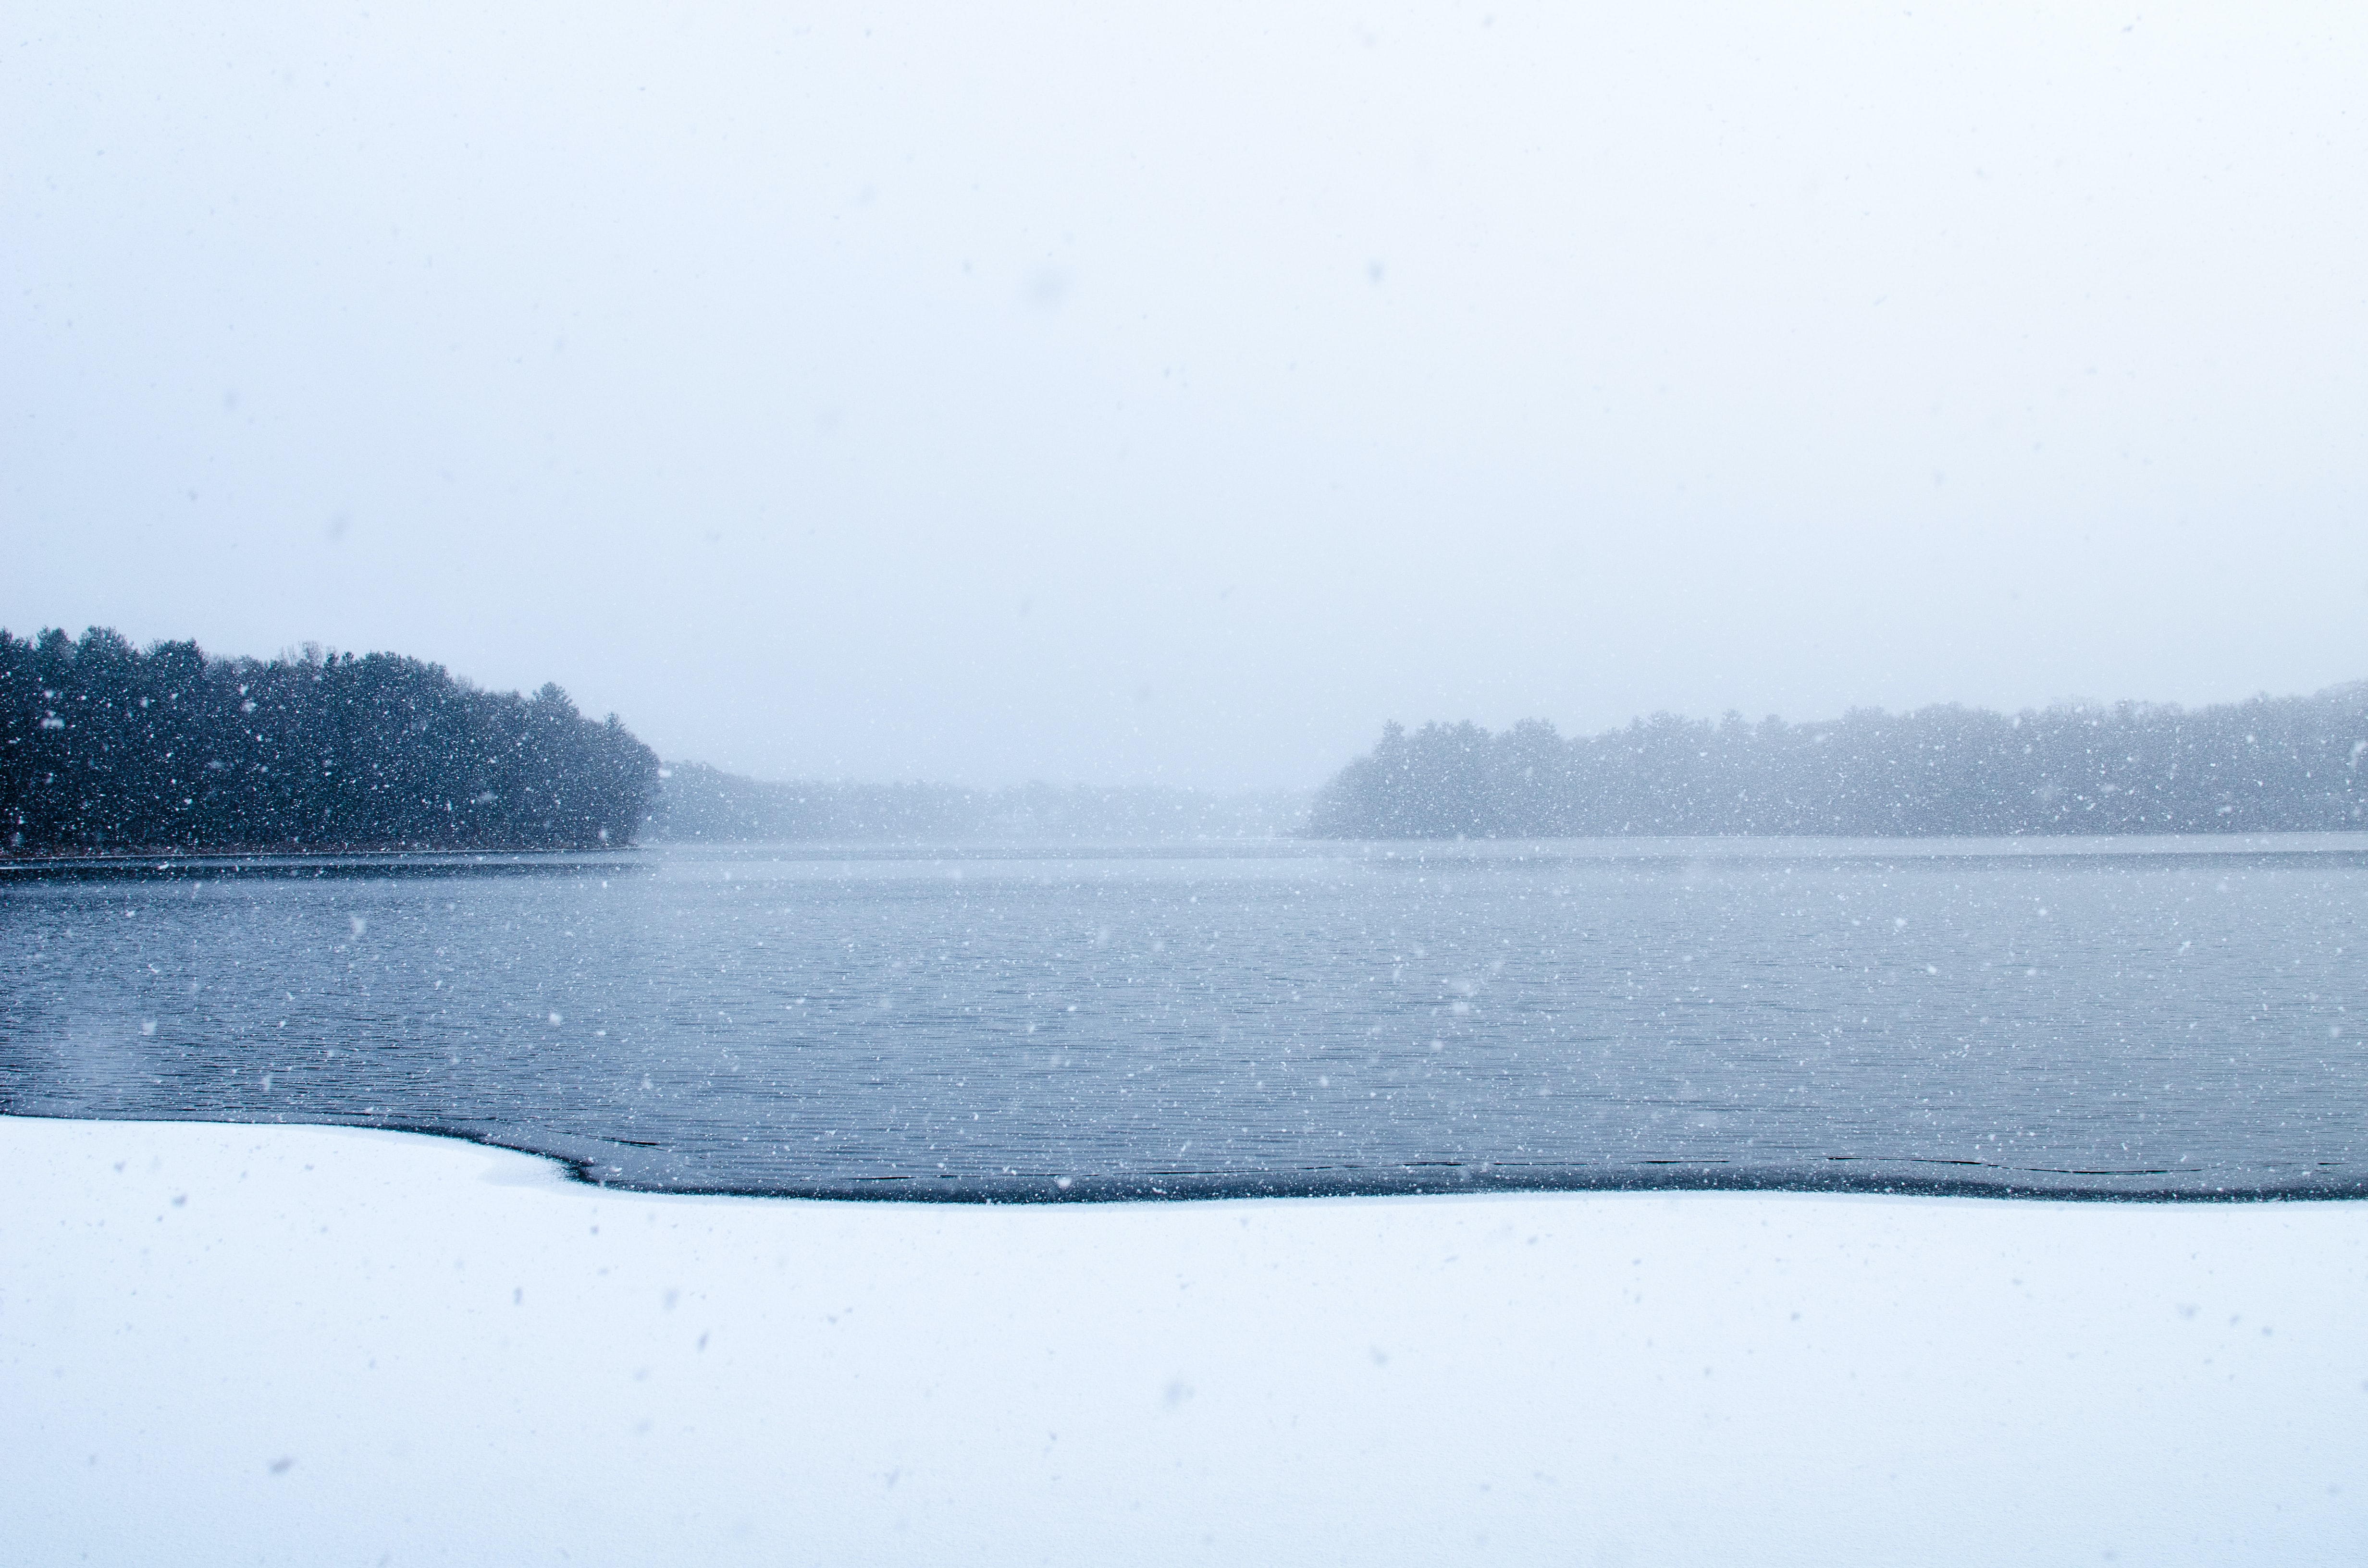 Snow falls on a dark, frozen lake surrounded by tees